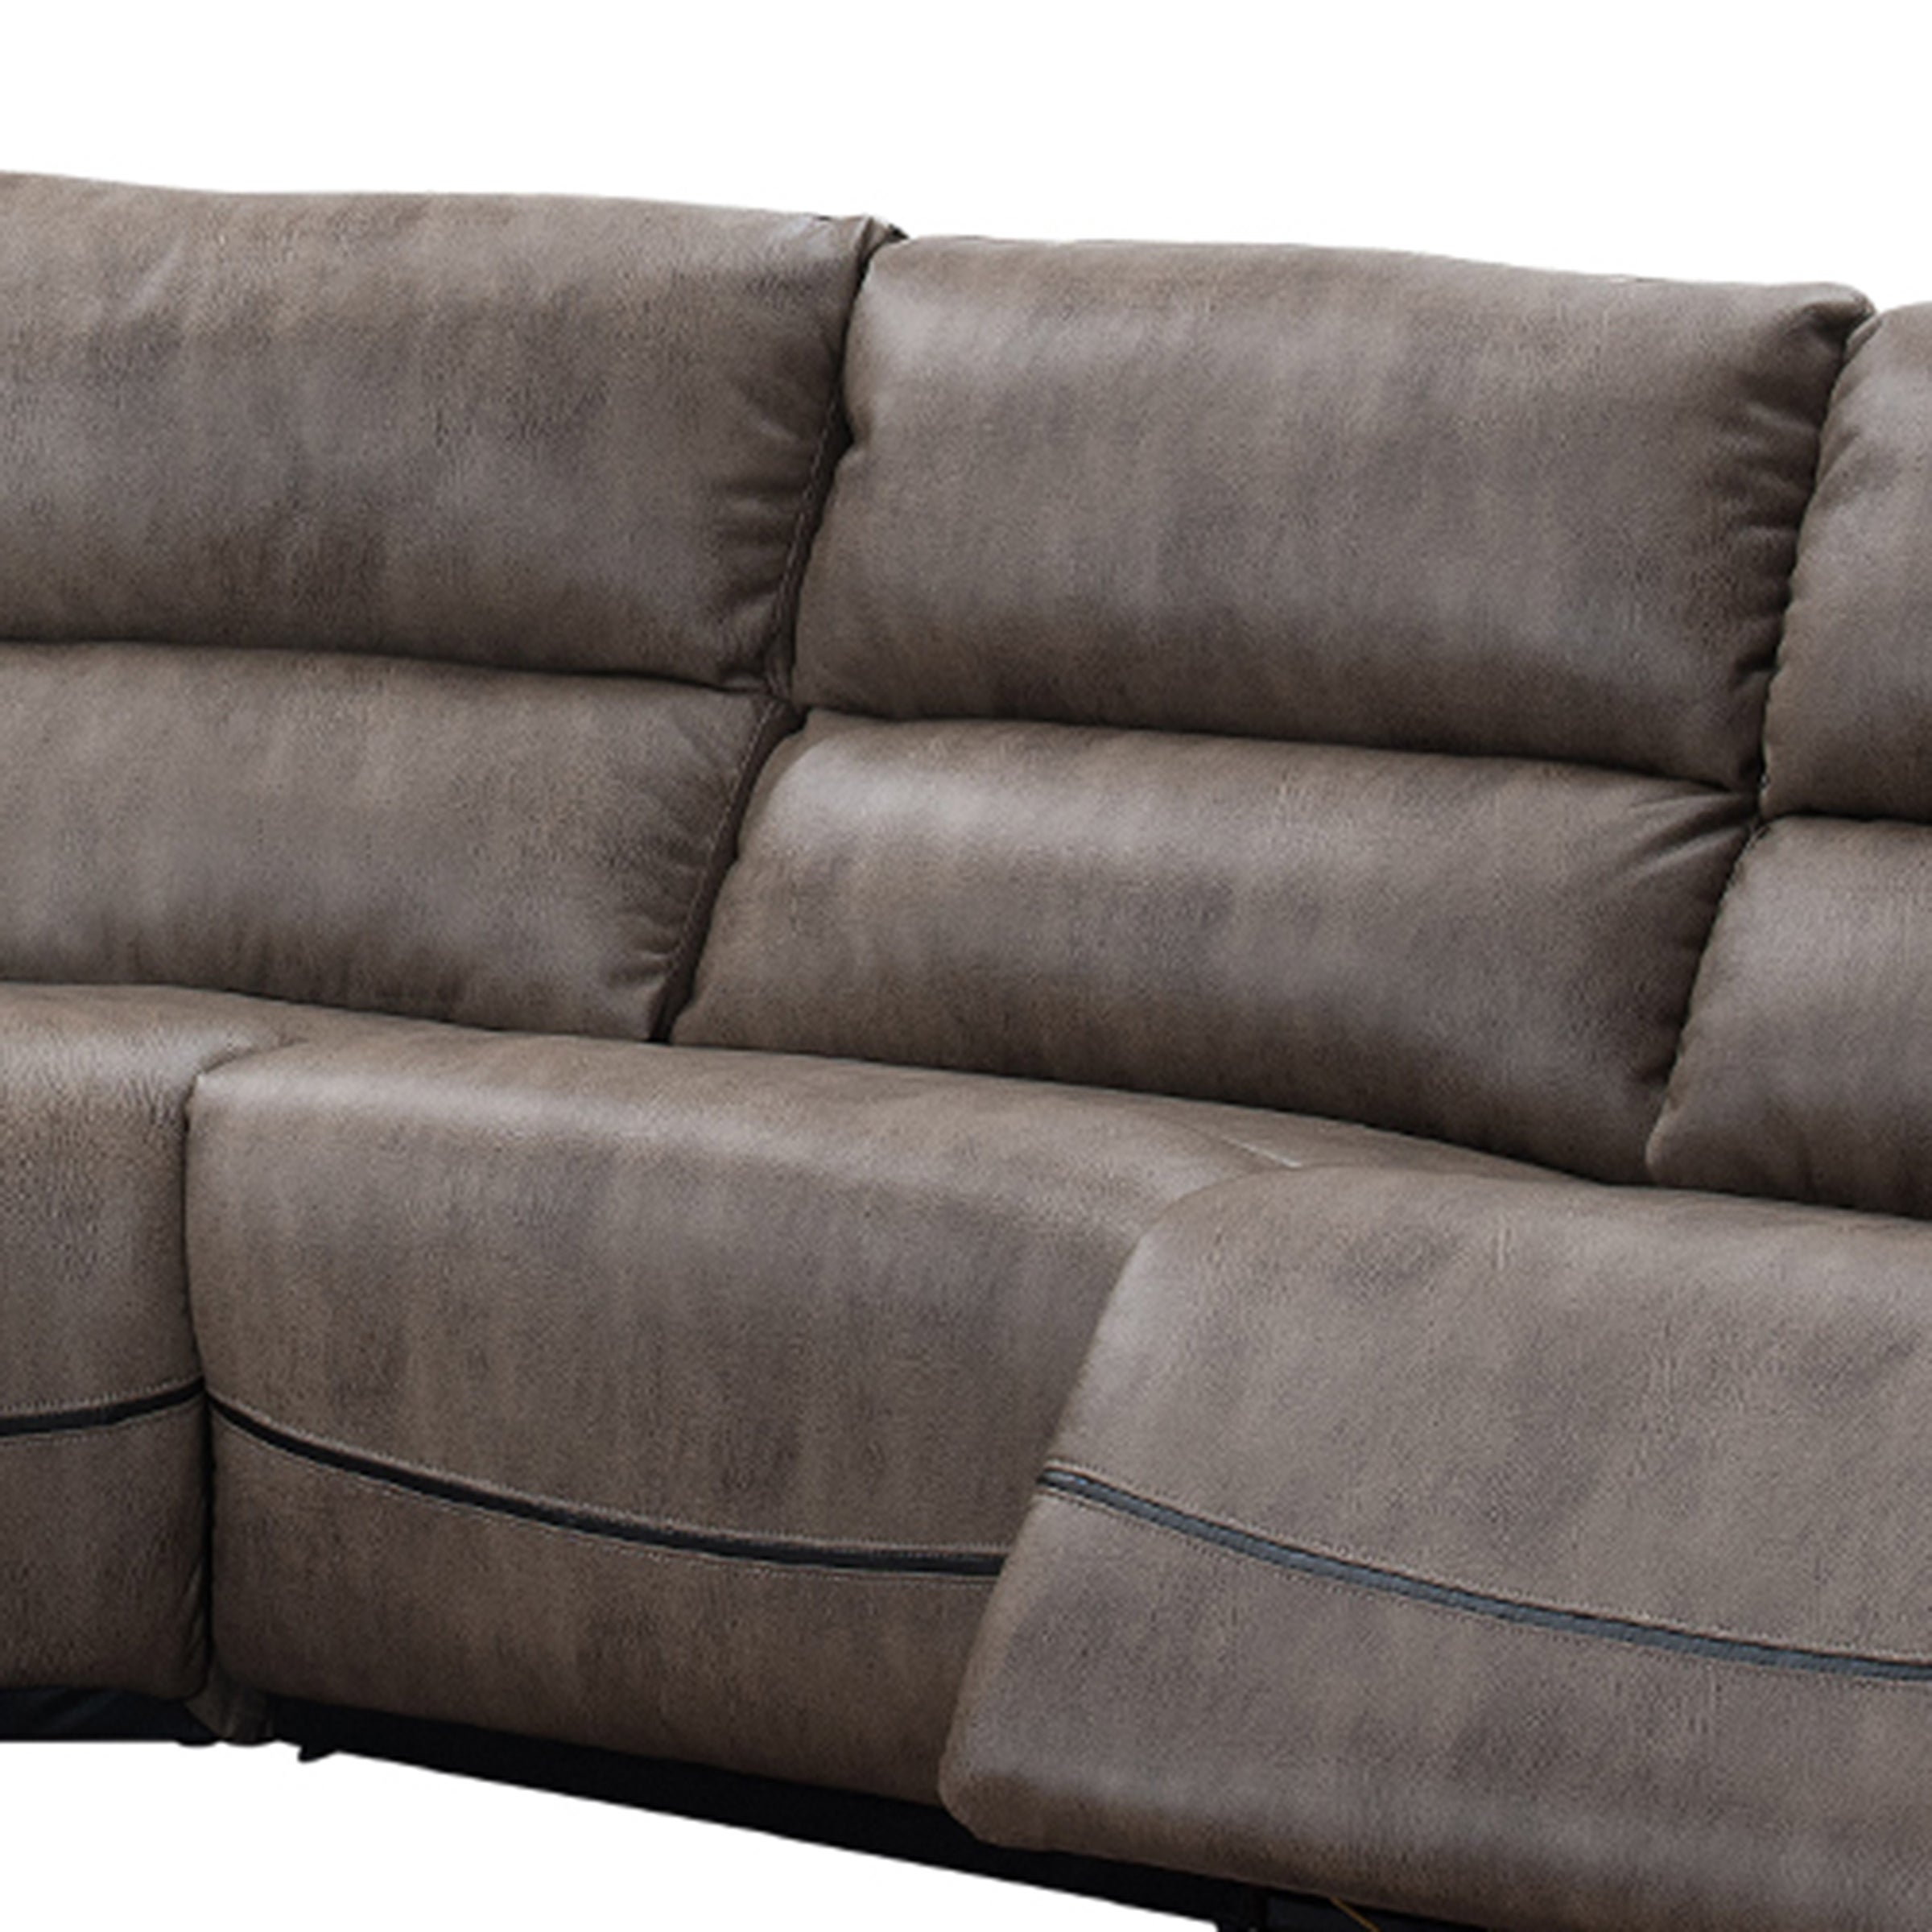 Shop Donovan 6 Piece Sectional Sofa With Power Reclining Seats And Storage  Console   On Sale   Free Shipping Today   Overstock.com   14989337